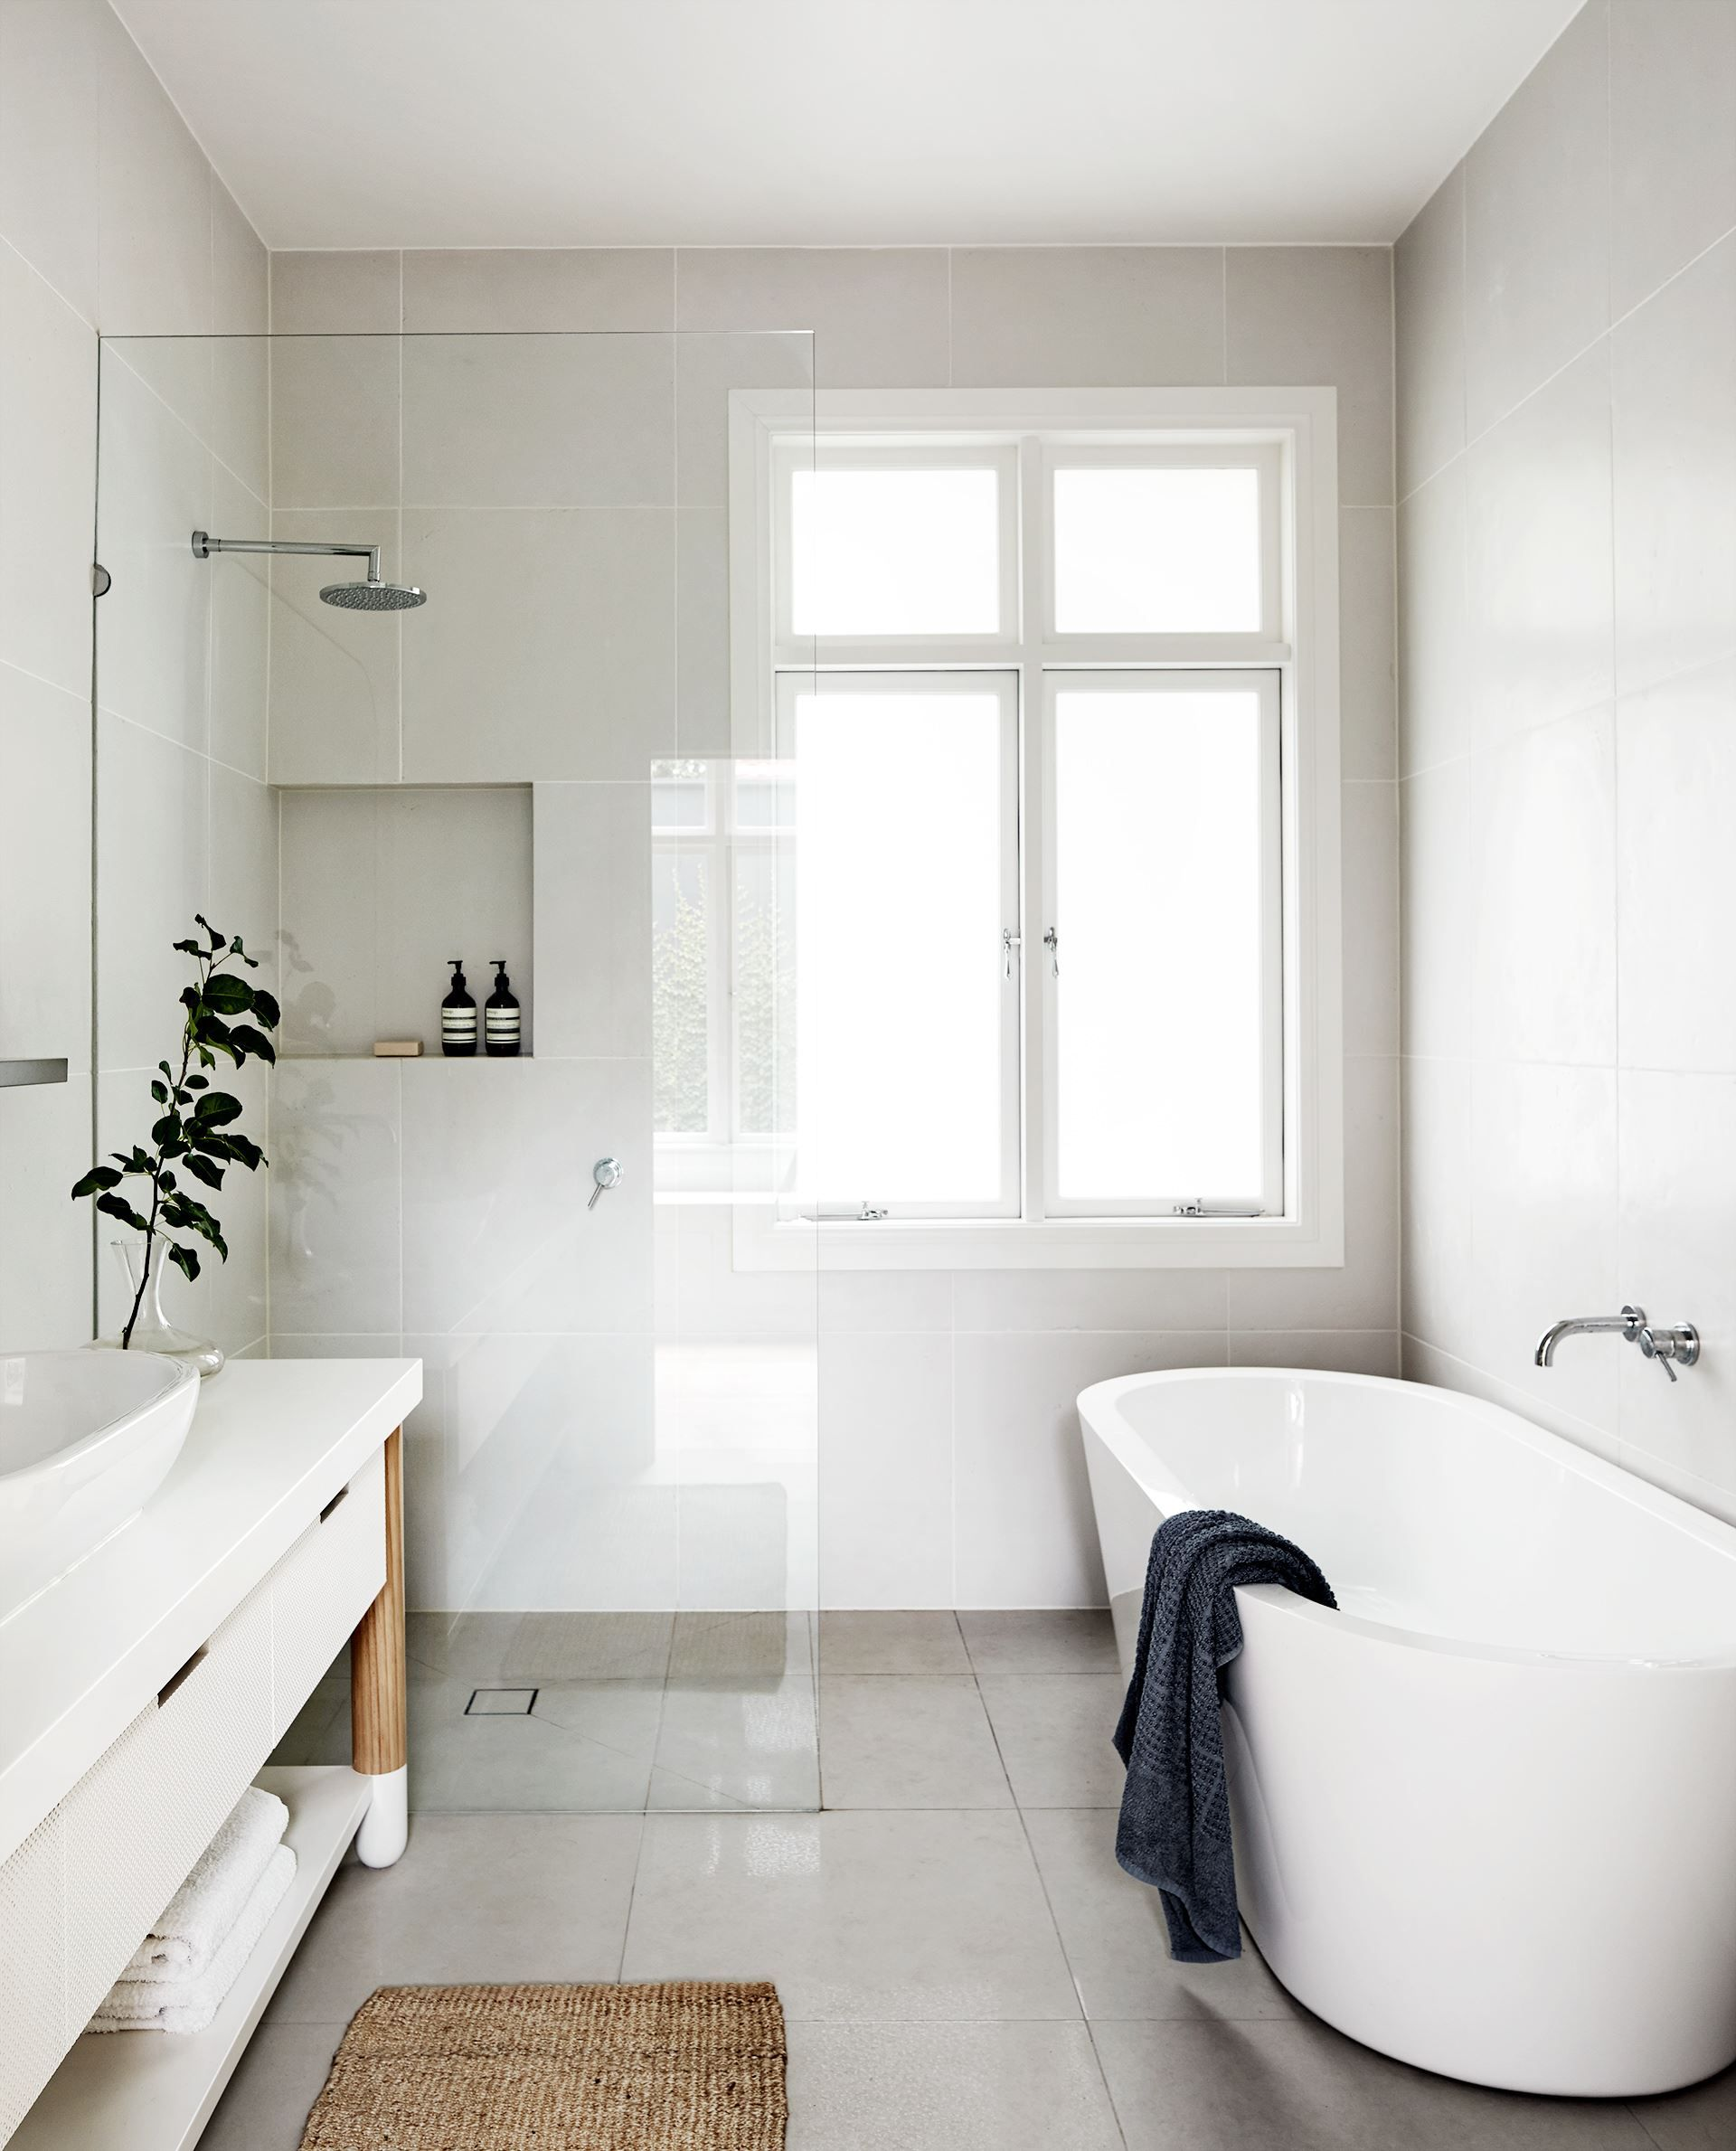 12 Small Bathroom Modern Ideas Most Of The Incredible And Also Beautiful Small Bathroom Layout Bathroom Inspiration Modern Bathroom Design Small